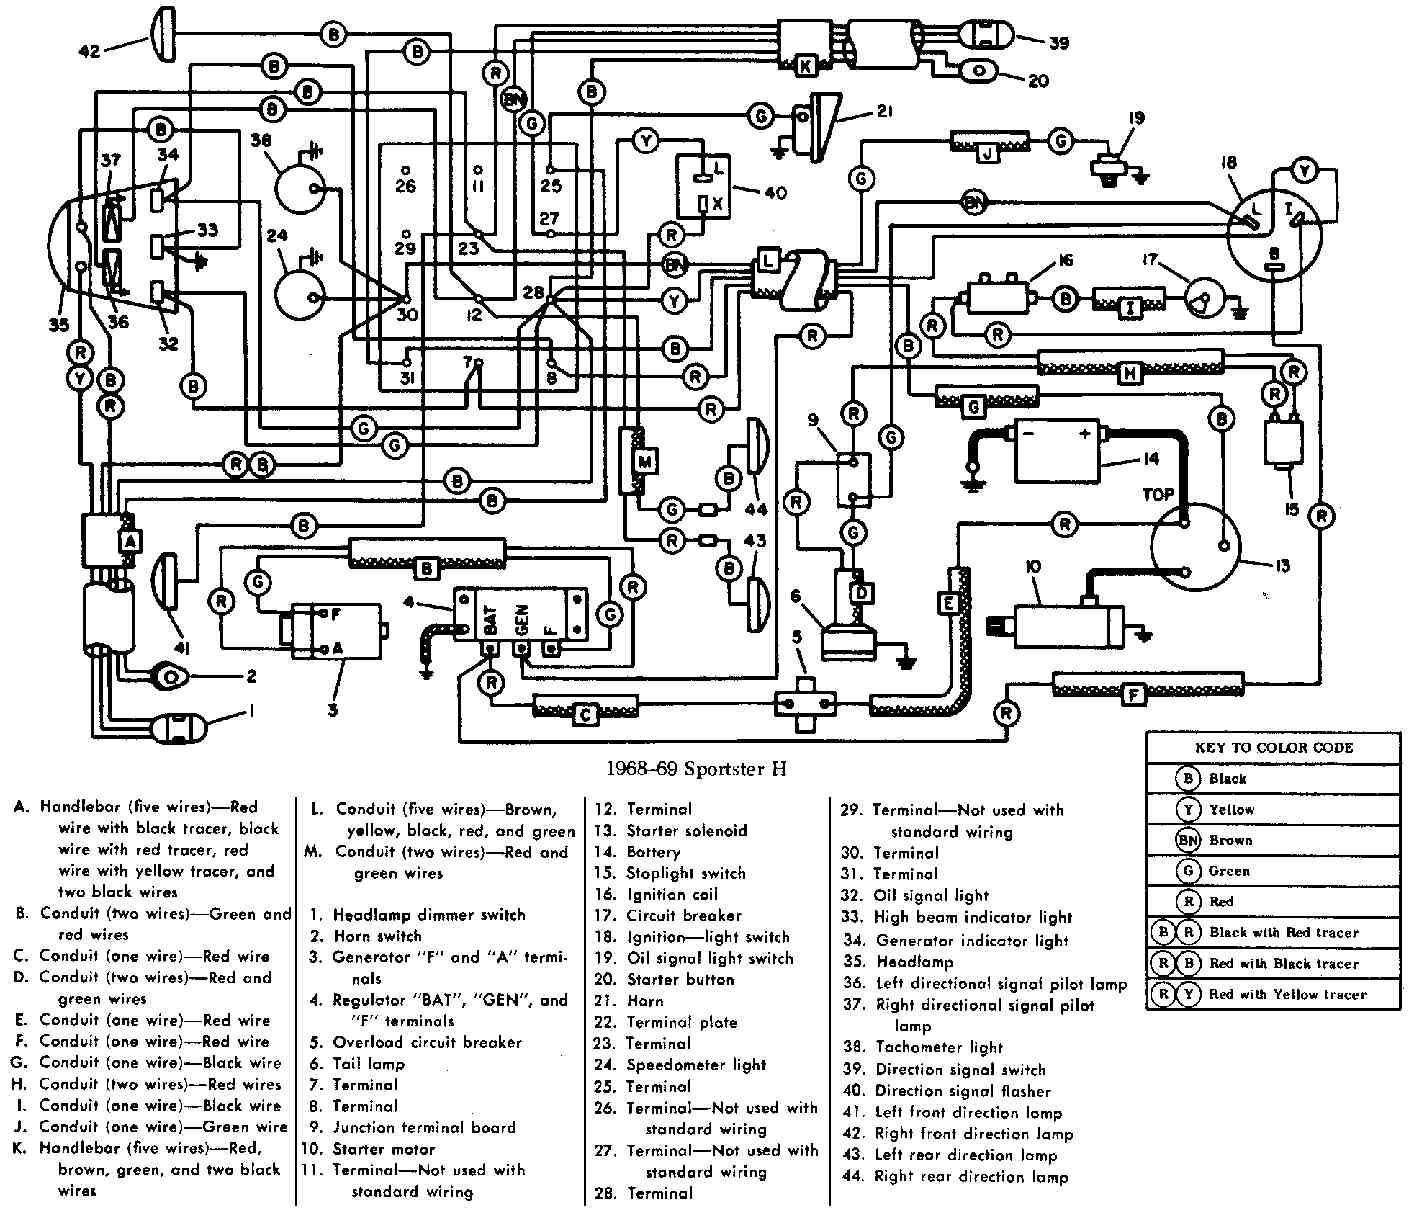 Harley Davidson Tour Pack Wiring Trusted Diagrams Ac Diagram Block And Schematic U2022 Road King Classic